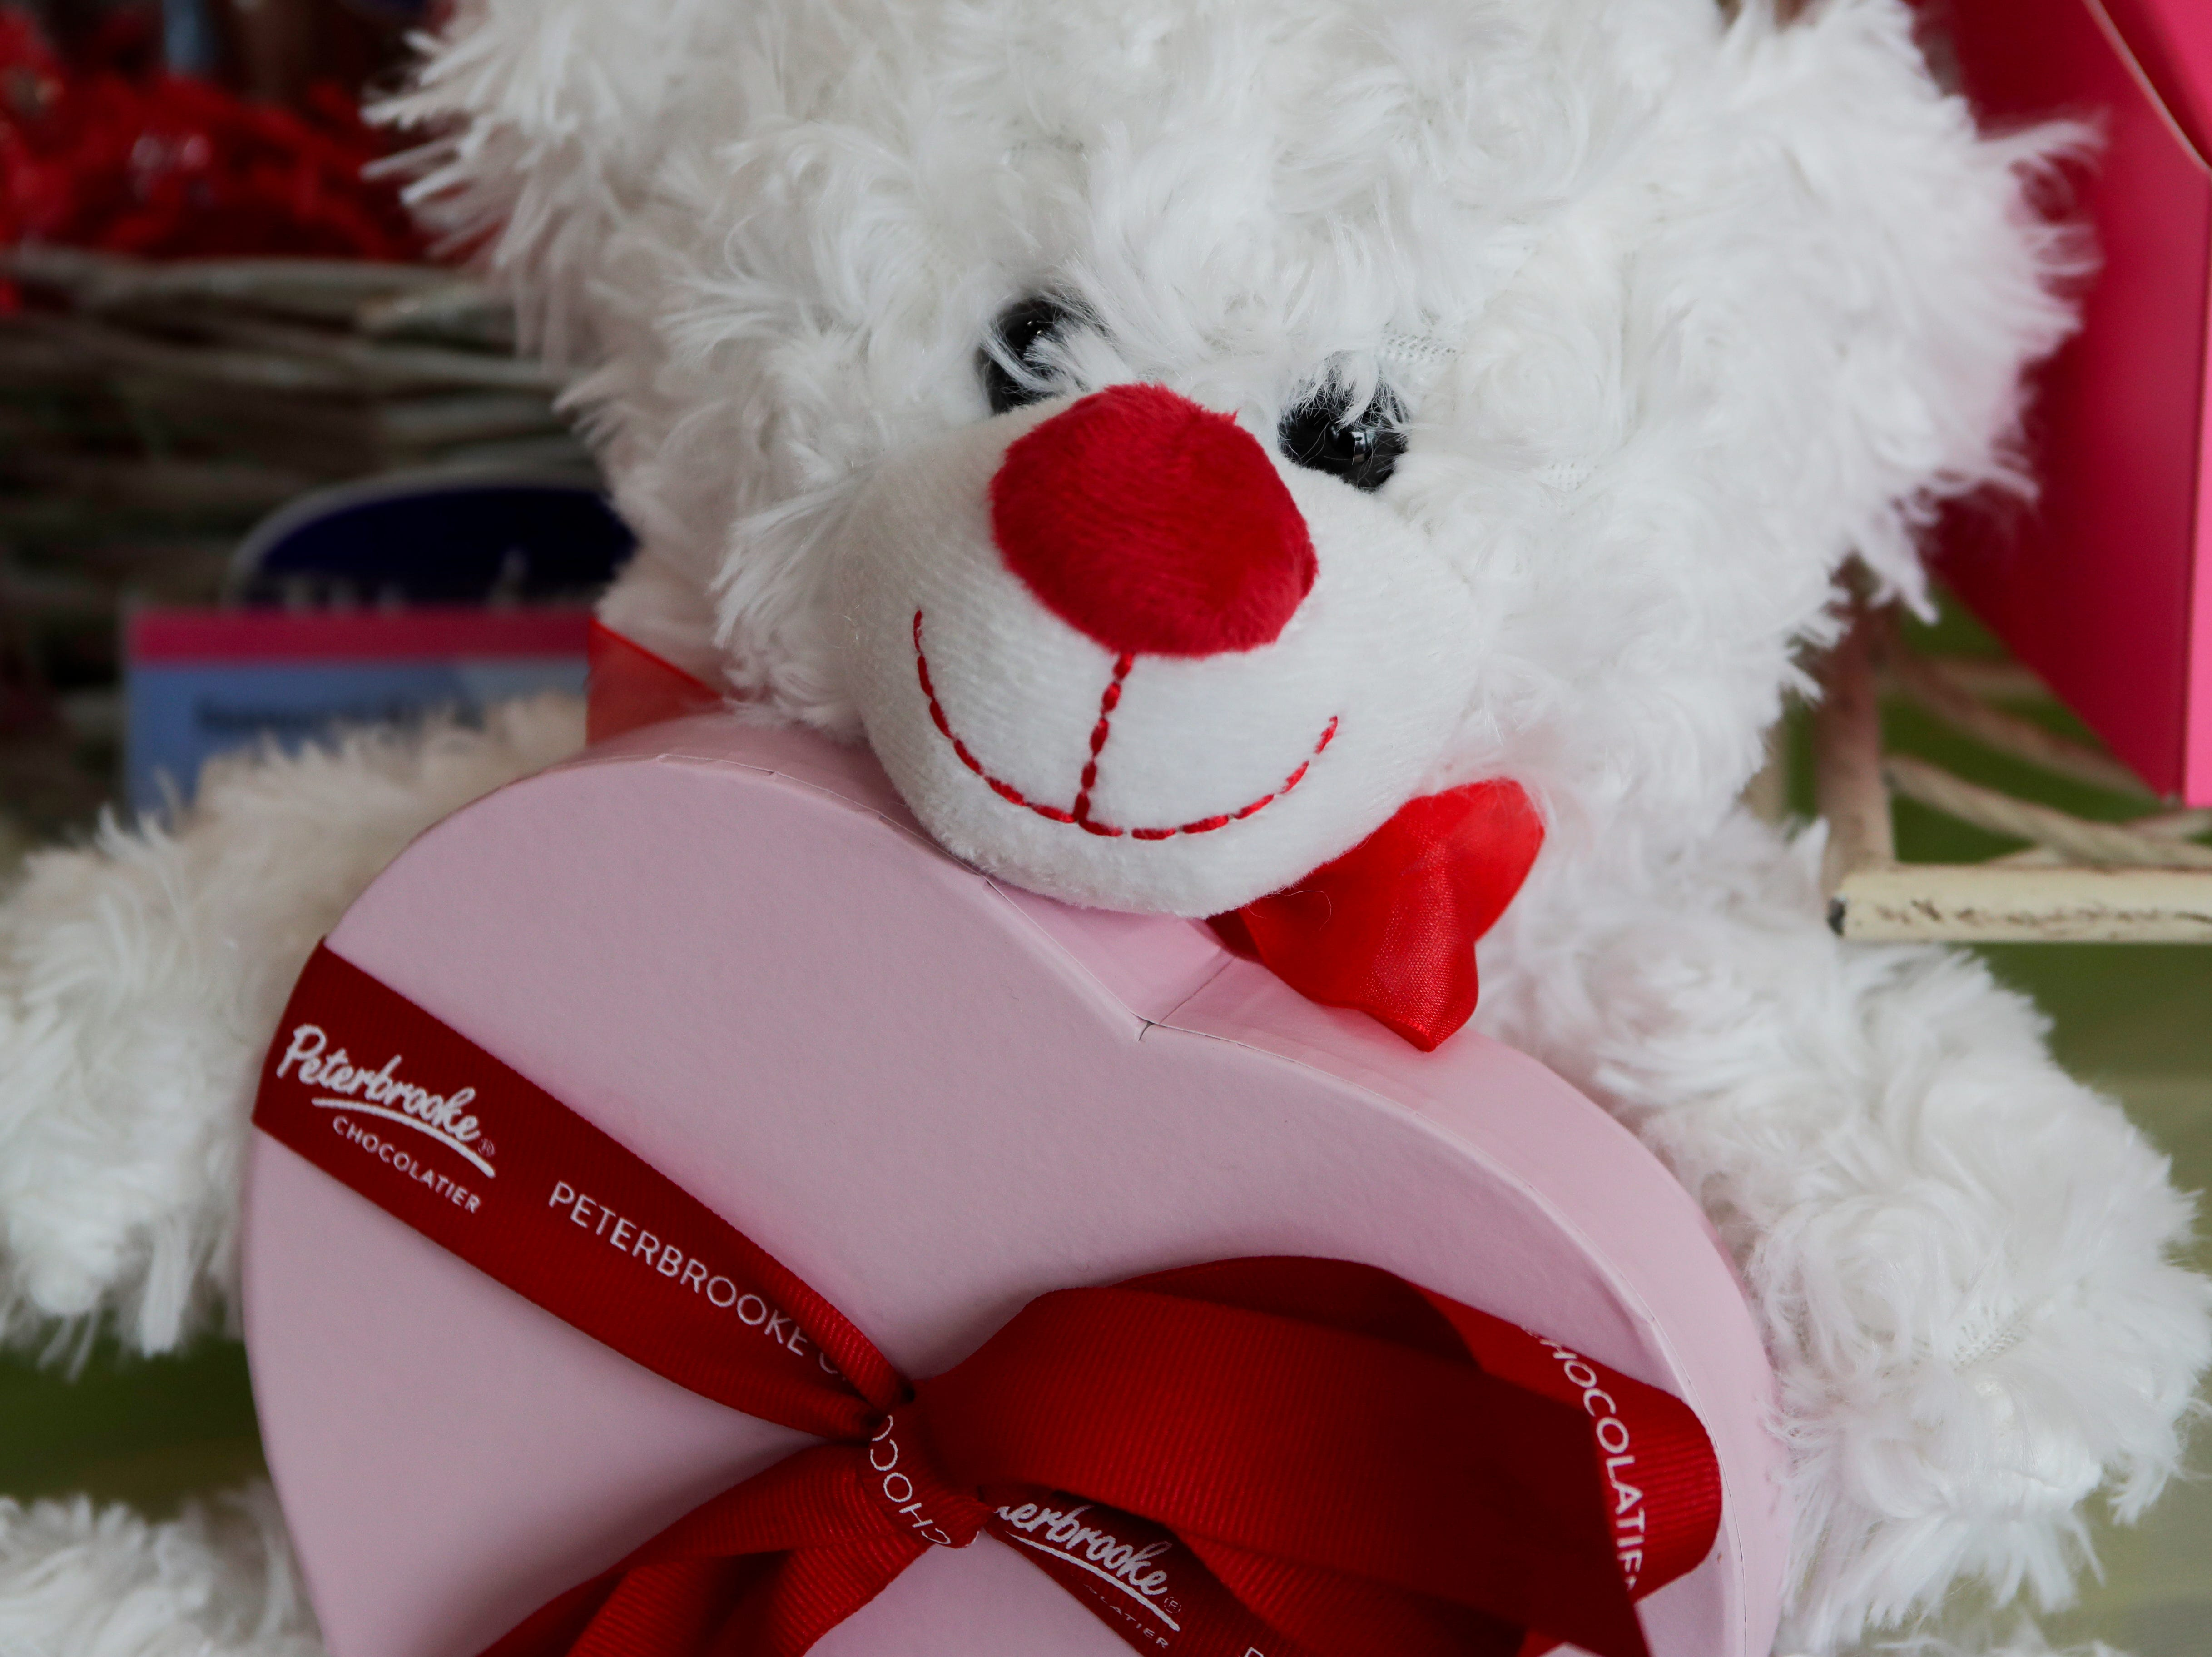 A heart-shaped box of assorted chocolates and a teddy bear is a popular gift purchase for Peterbrooke Chocolatier customers on Valentines Day.